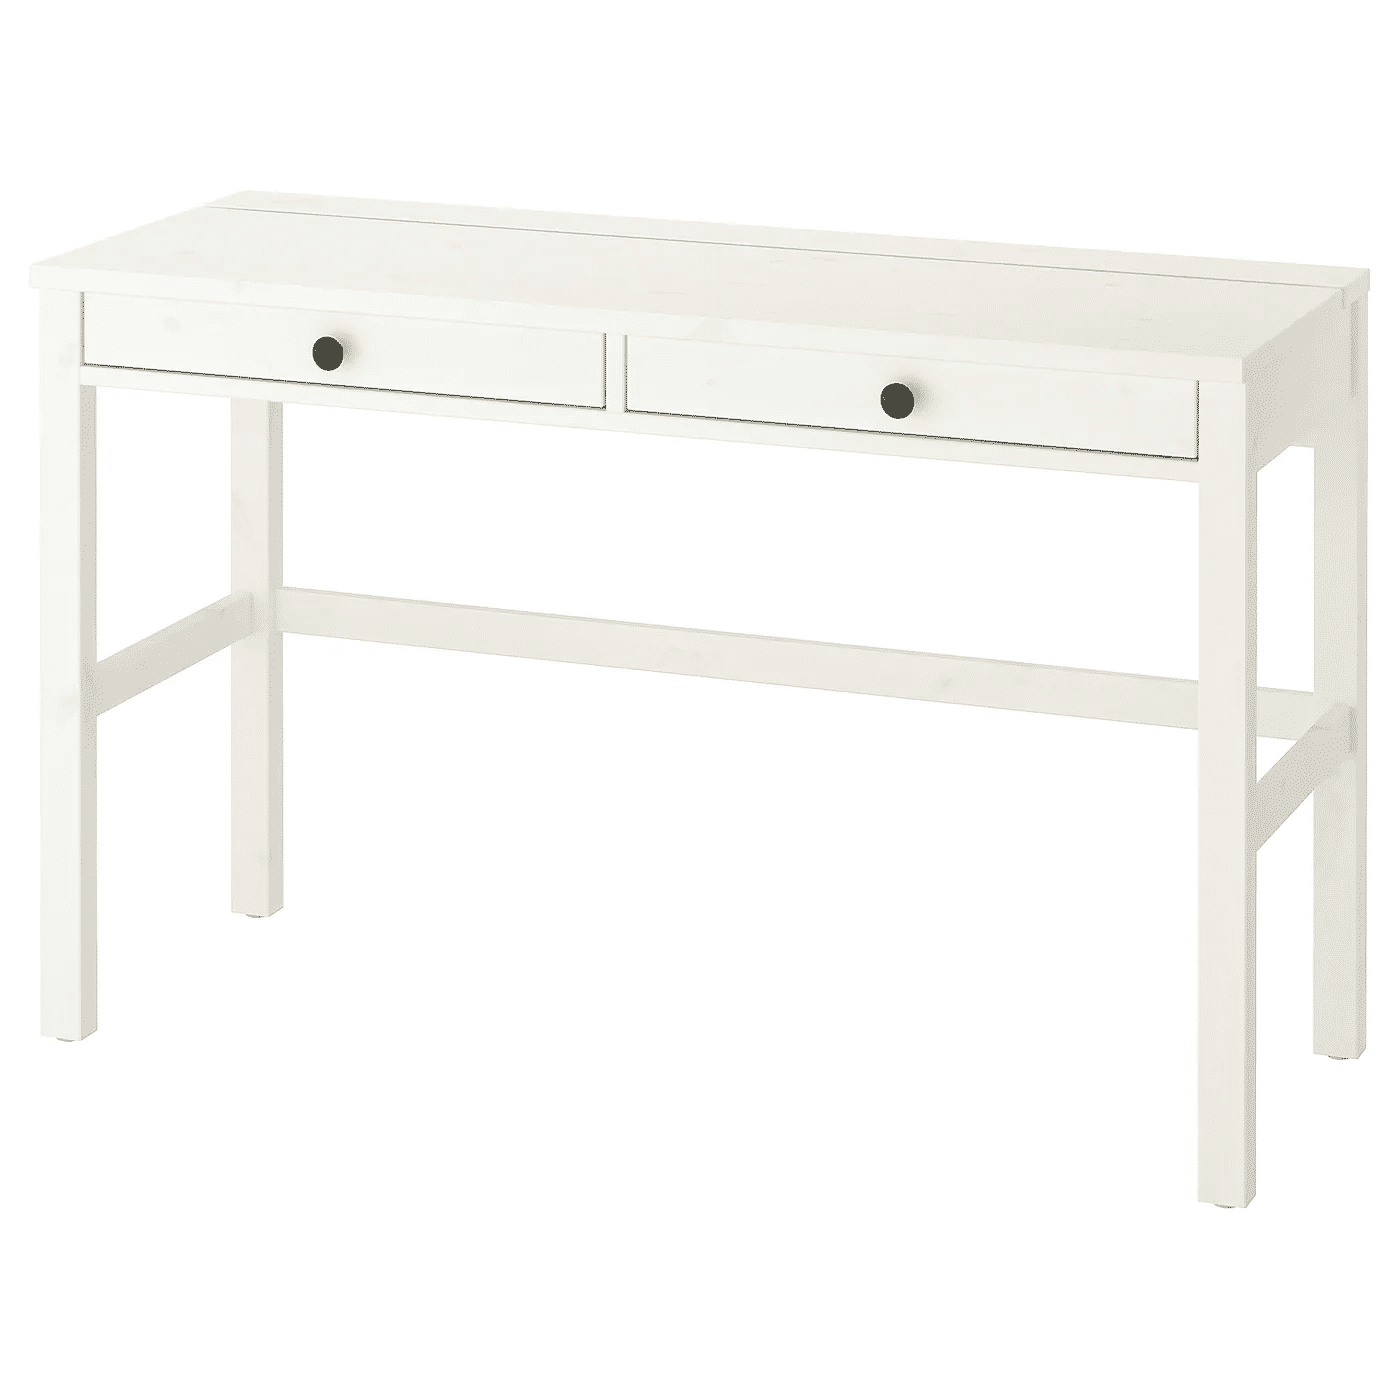 HEMNES Desk with 2 drawers, white stain